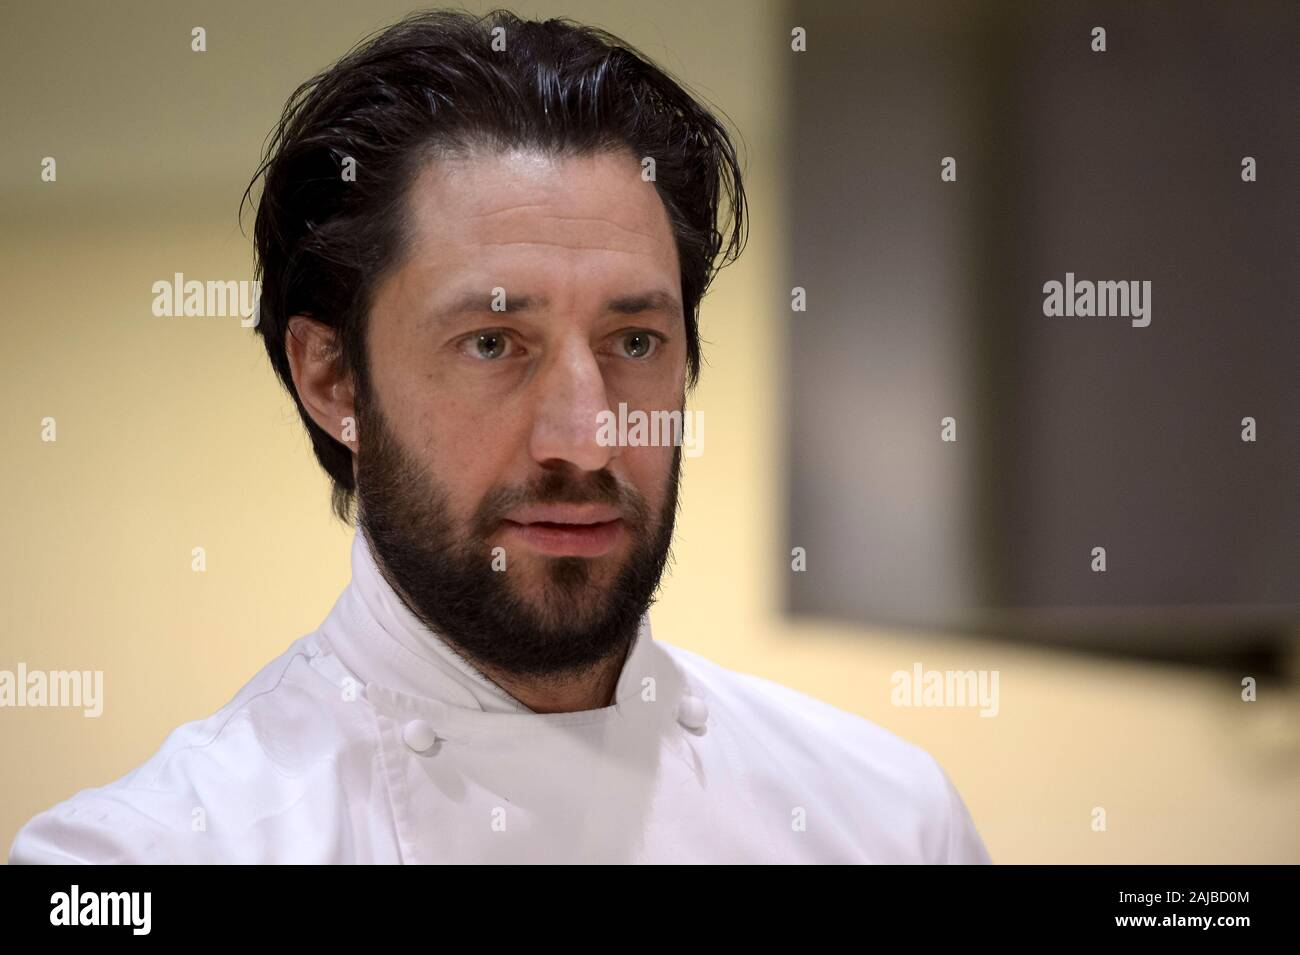 Turin, Italy - 27 January, 2017: The awards winning chef Luigi Taglienti looks on during the celebration for Eataly 10th anniversay. Eataly is the largest Italian marketplace in the world. Credit: Nicolò Campo/Alamy Live News Stock Photo